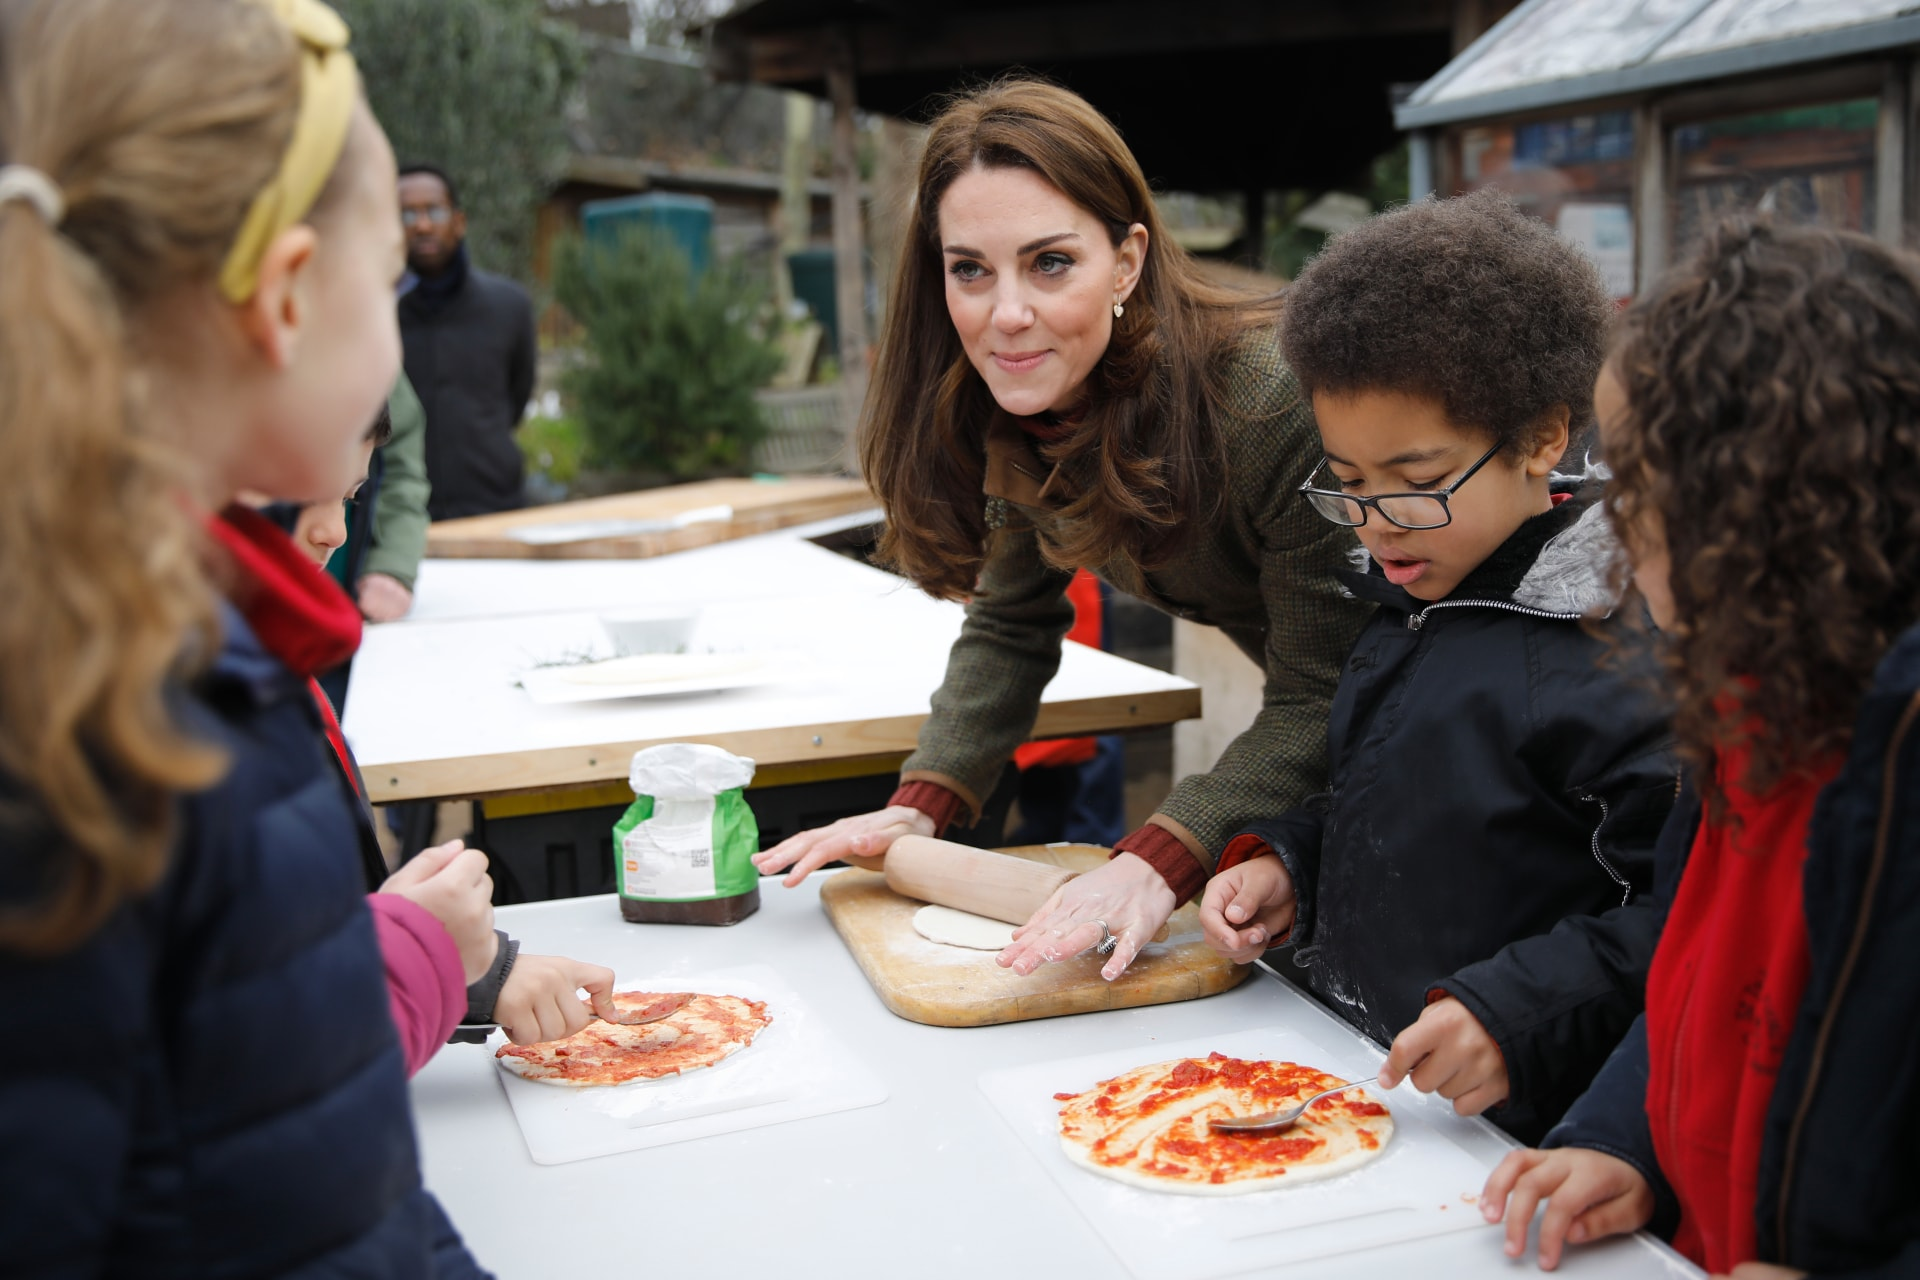 Kate Middleton answers the question of whether or not Queen Elizabeth eats pizza